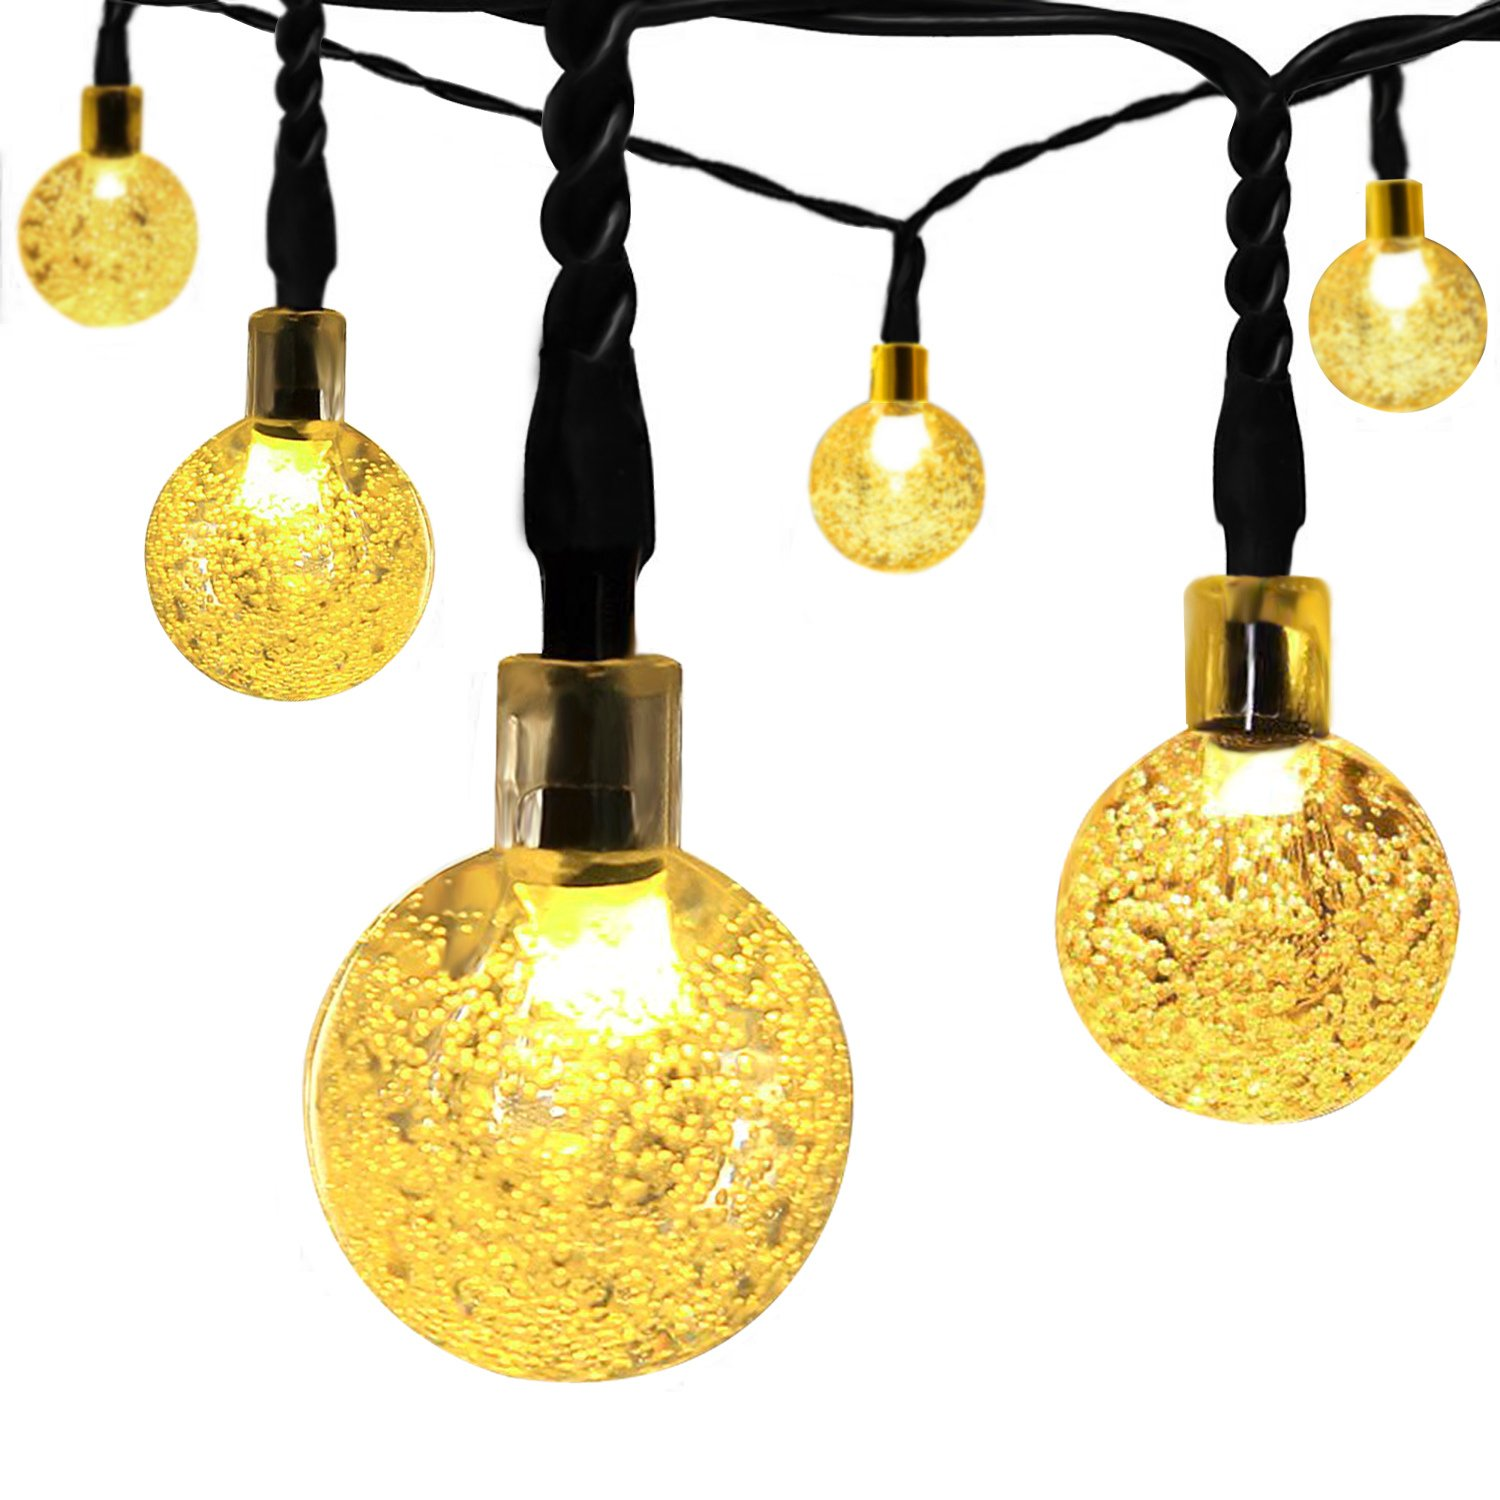 LED String Lights, LDesign 33ft Dimmable 100 LEDs 10 Levels Waterproof(IP65) Powered Starry Fairy Copper Wire Christmas Lights with Remote Control for Indoor ,Outdoor,Garden,Wedding,Christmas Party,Patio,Lawn,Holiday,Xmas Tree, Wedding-3 Modes Warm White L